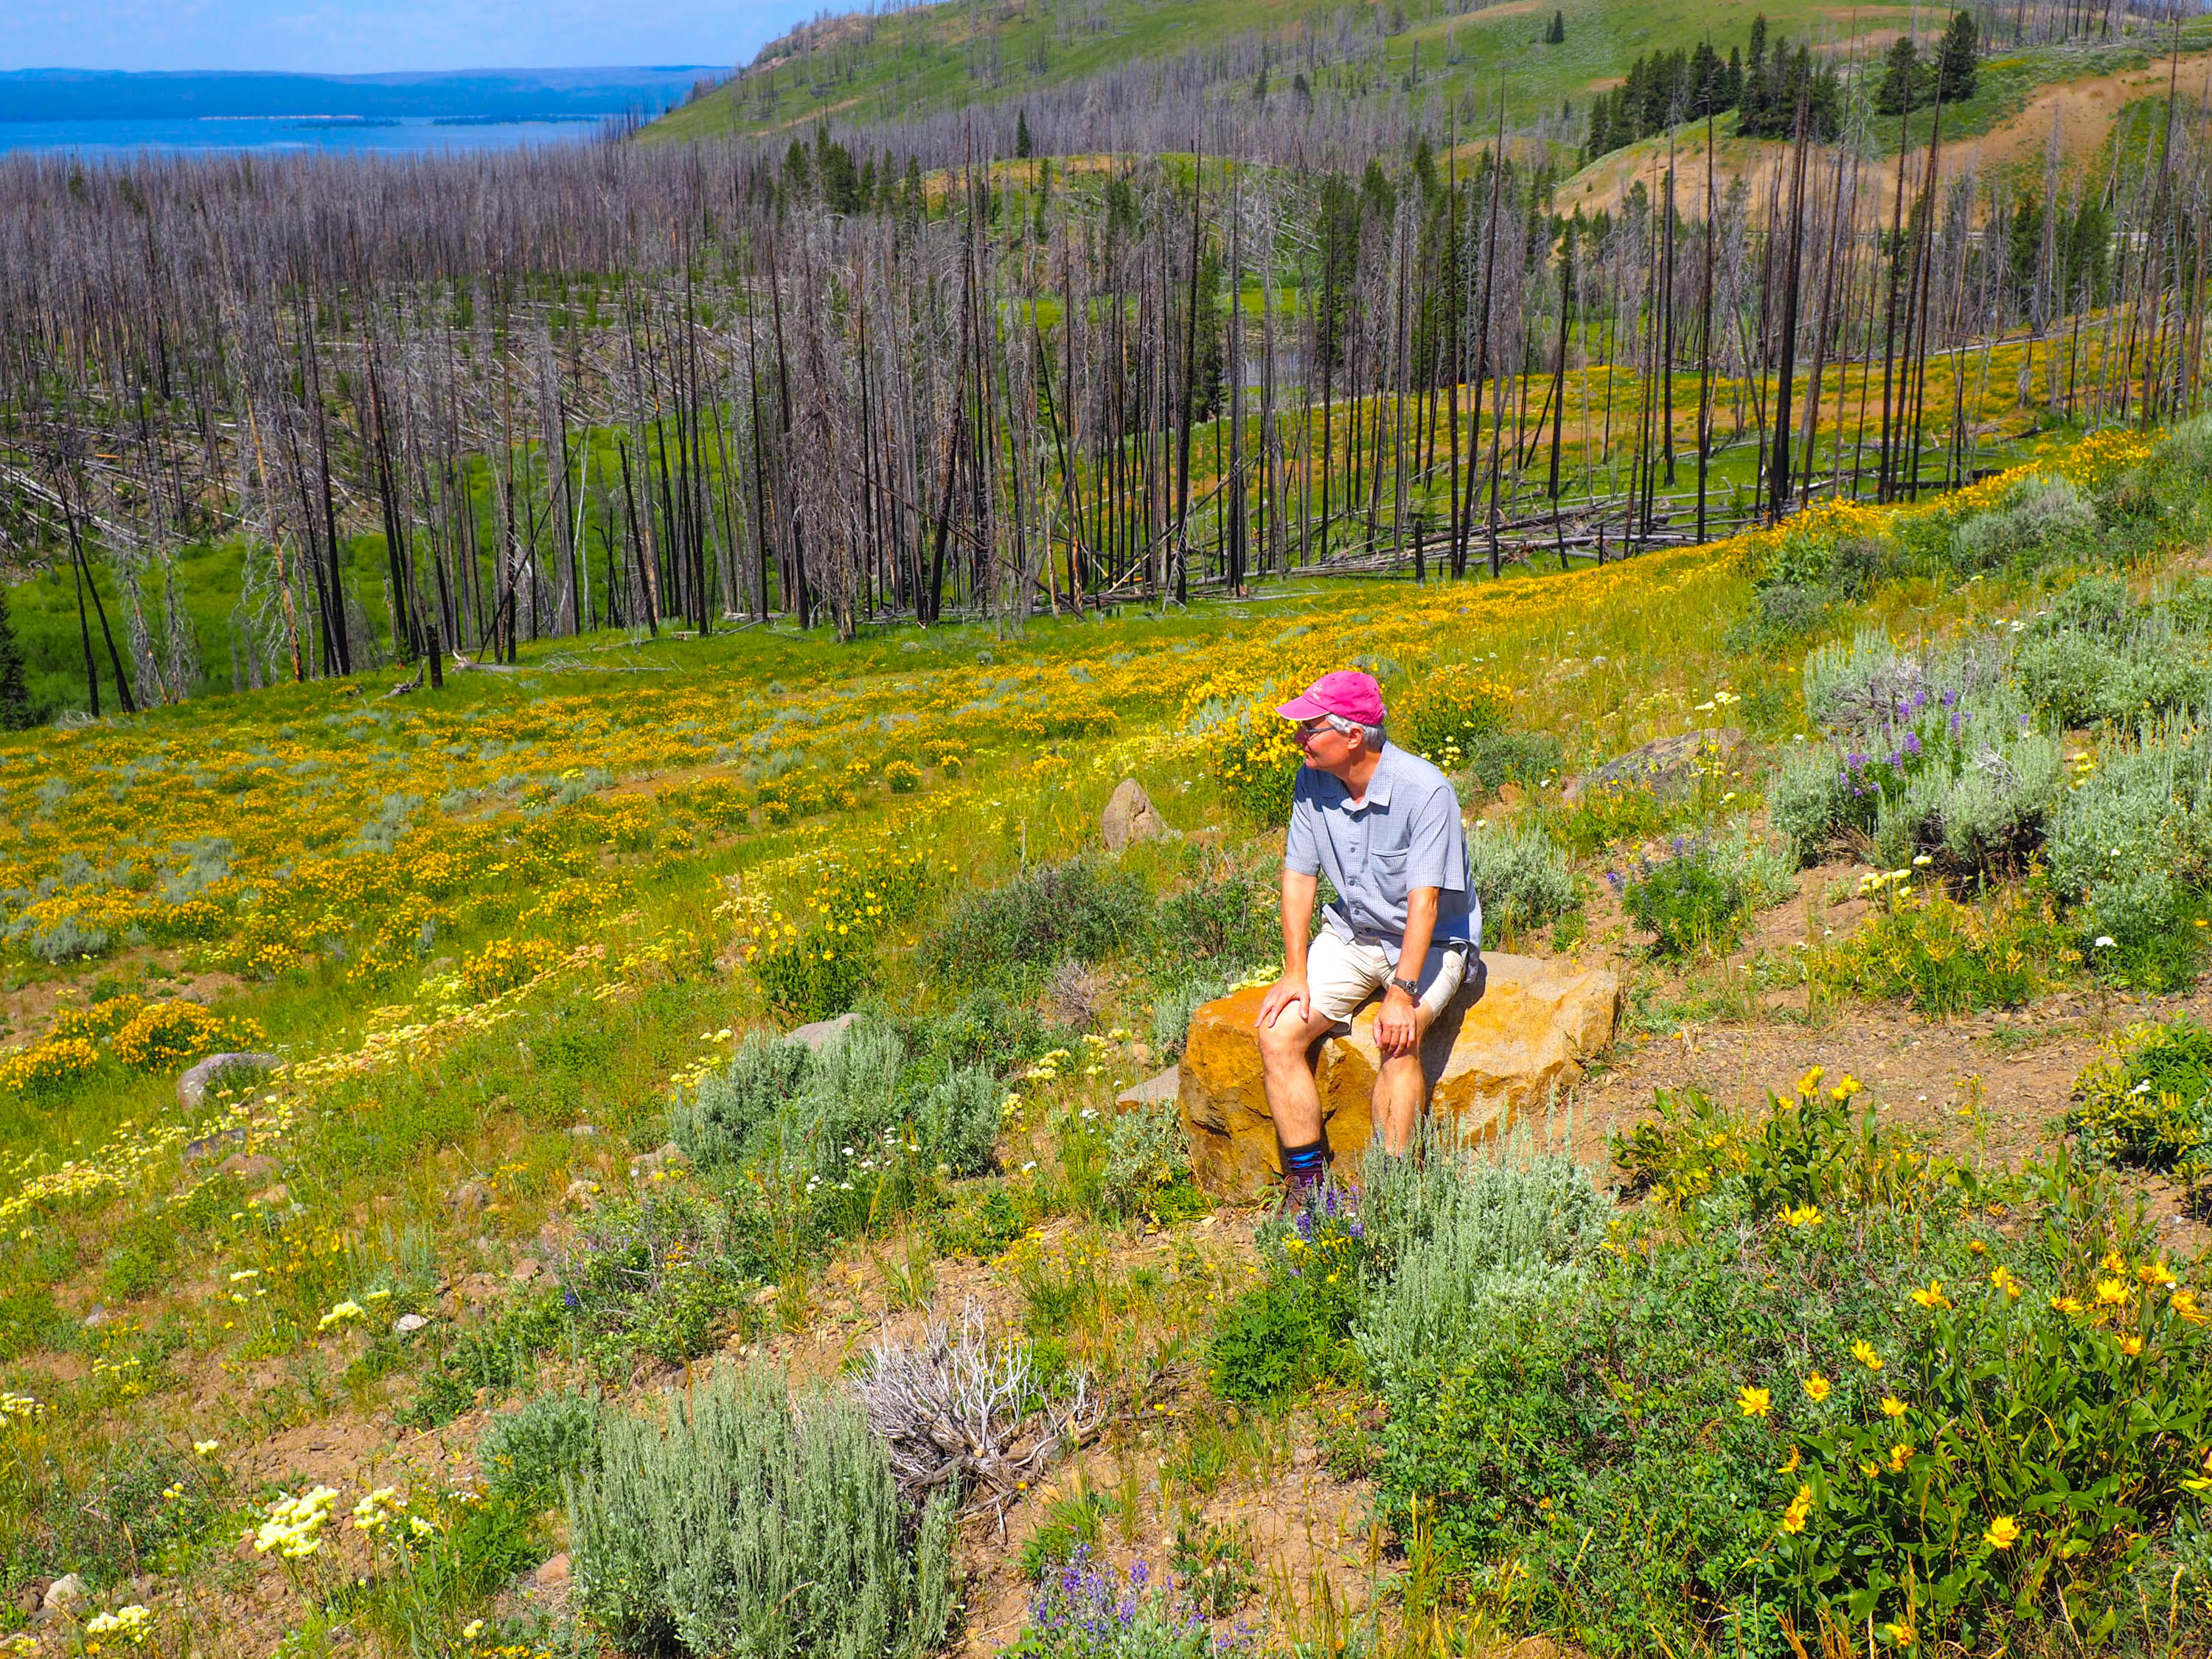 A thoughtful Steve Paulson viewing Yellowstone National Park. <em>Steve Paulson (TTBOOK)</em>